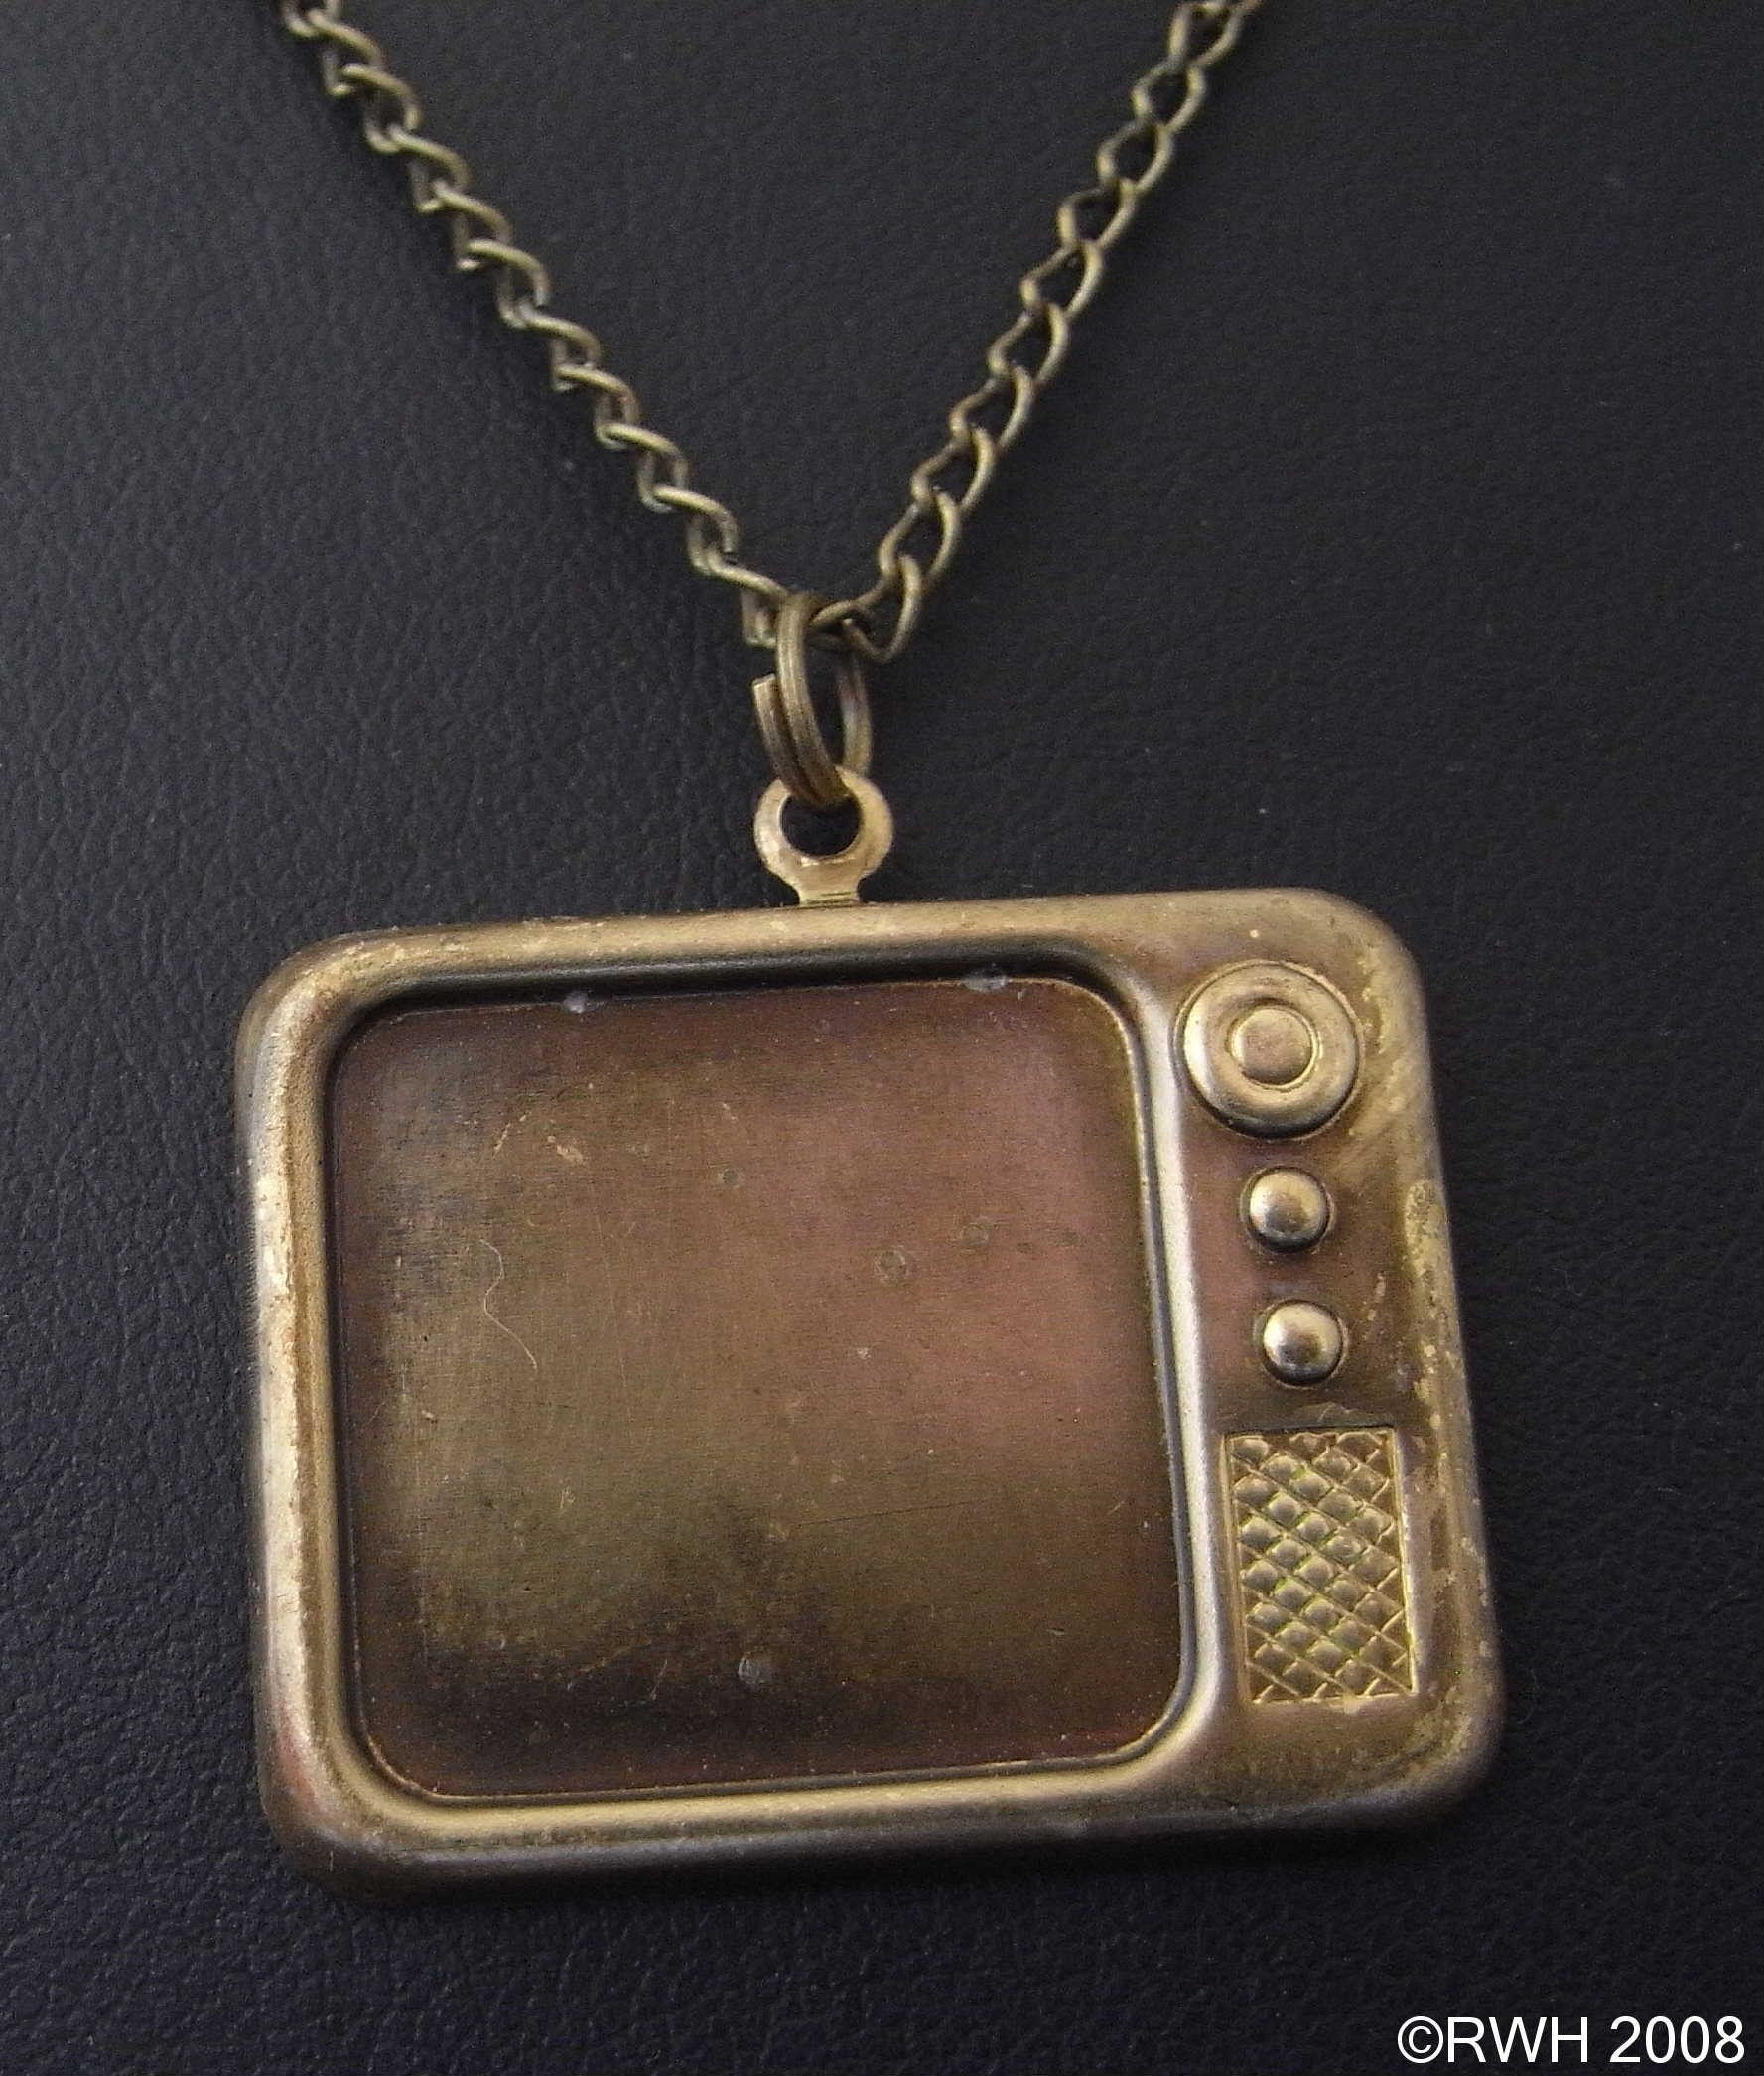 Retro TV television Necklace AG015 FREE SHIPPING